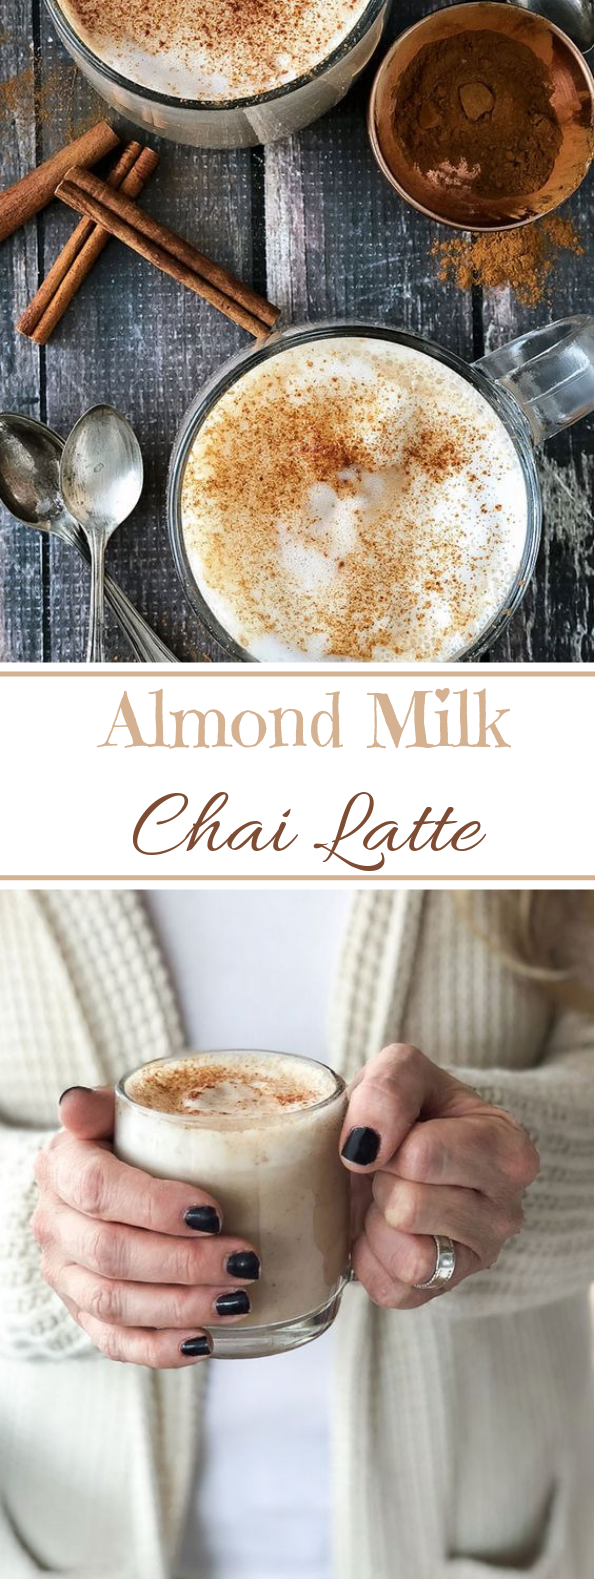 Almond Milk Chai Latte #drinks #latte